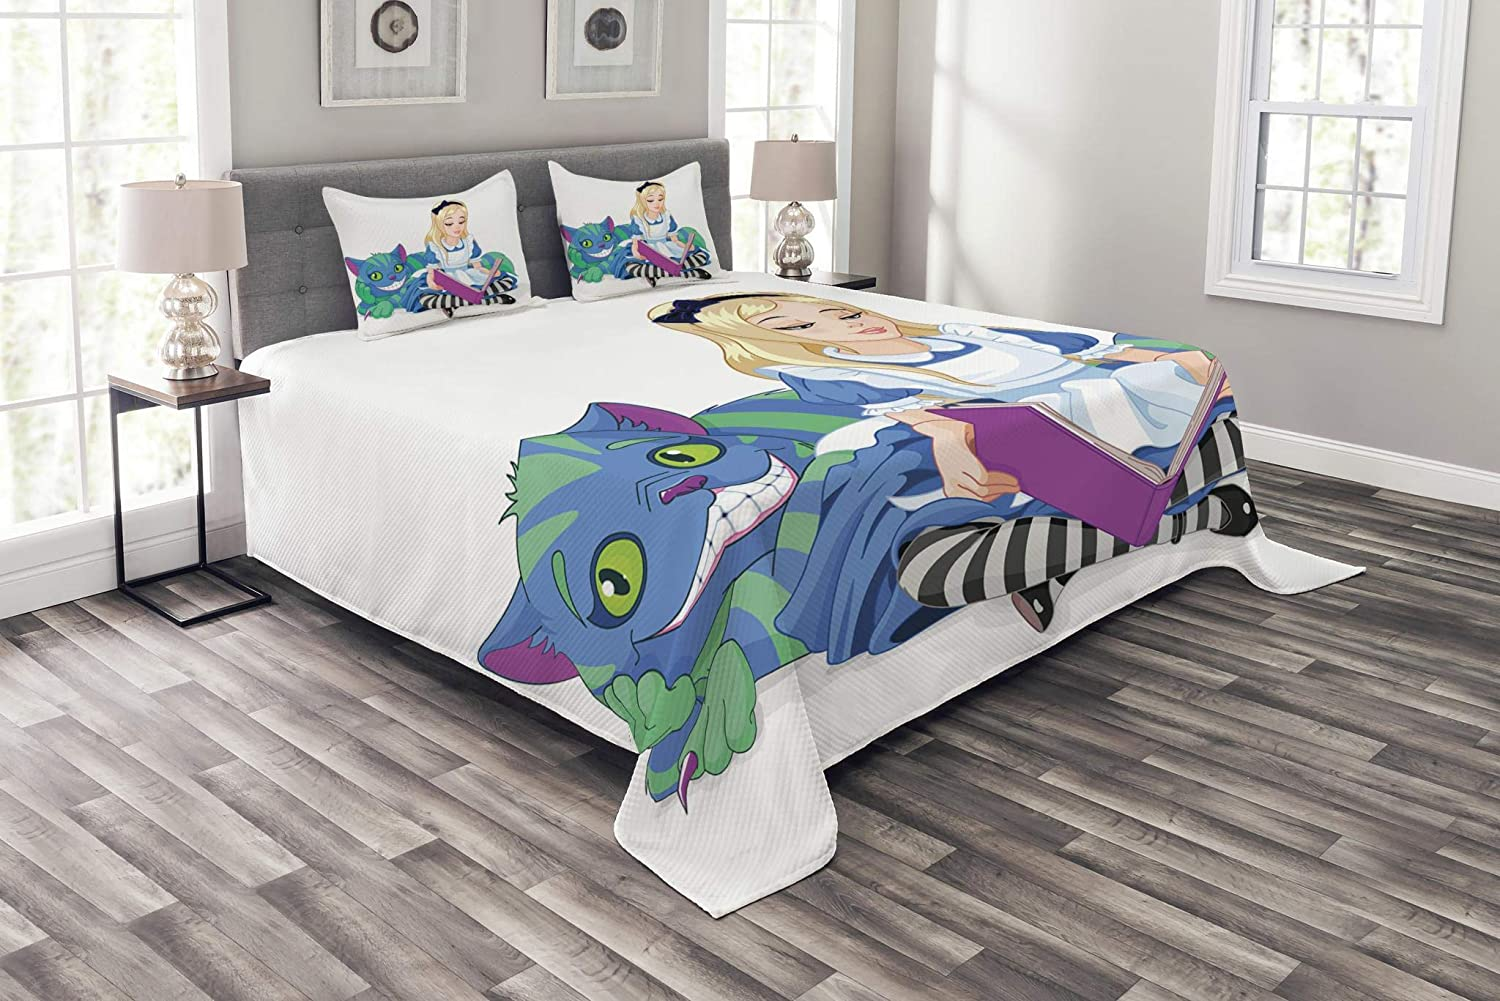 Ambesonne Alice in Wonderland Bedspread, Alice Reading Book Cat Colorful World Happiness Love Character Image, Decorative Quilted 3 Piece Coverlet Set with 2 Pillow Shams, Queen Size, White Purple